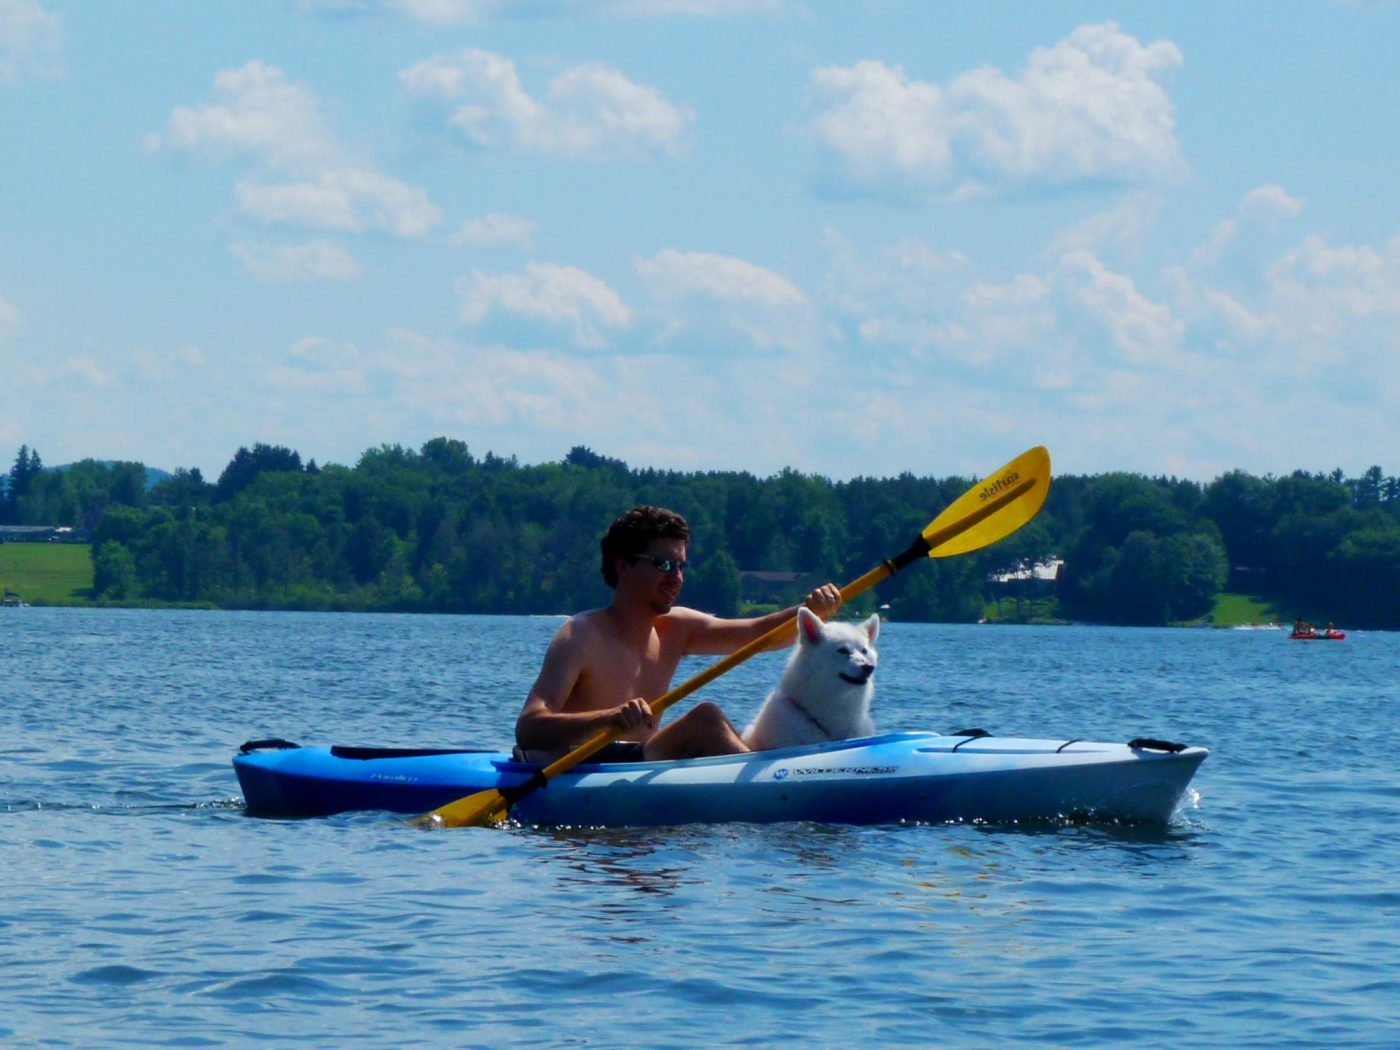 Dog PFD Guidelines: Keeping Your Dog Safe While Kayaking